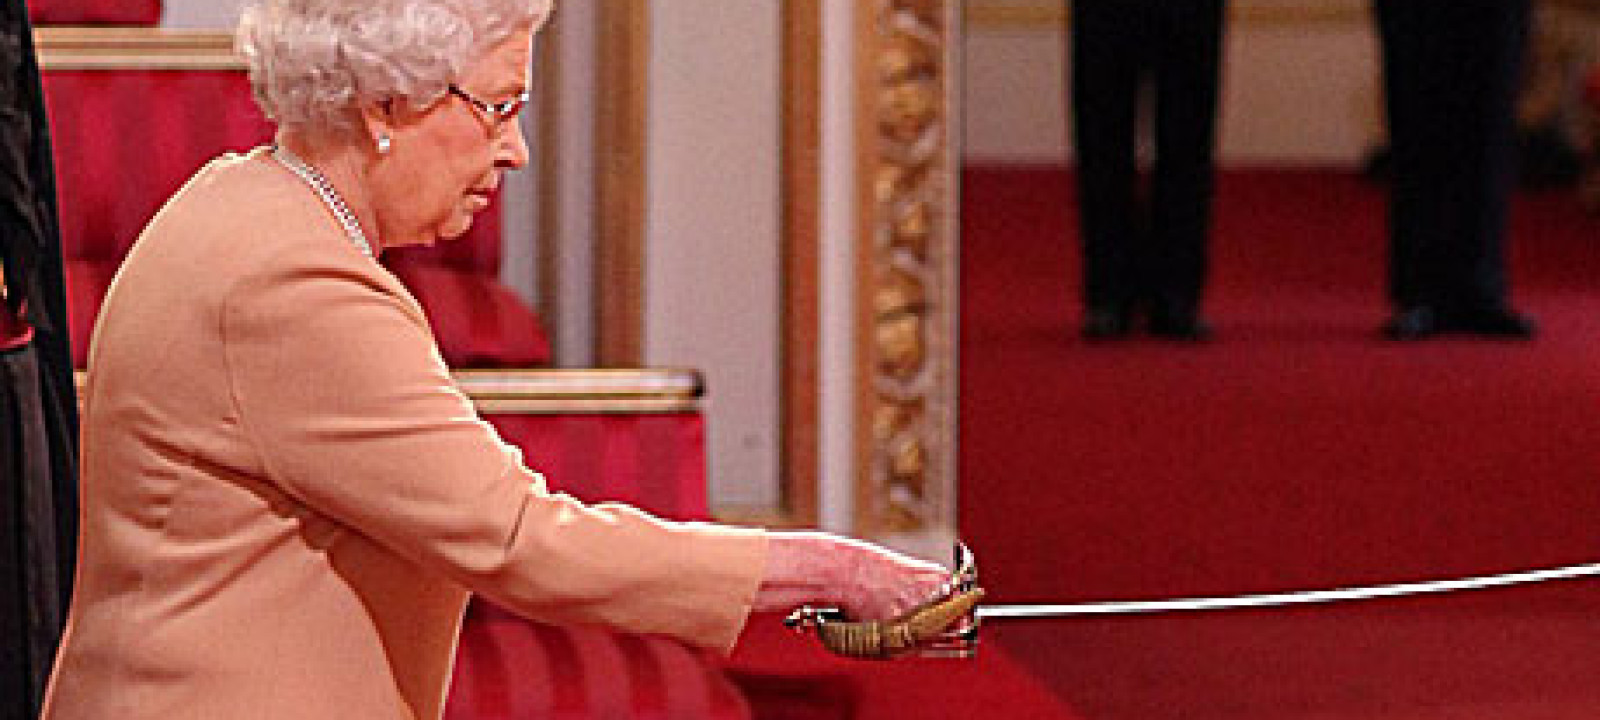 The Queen and her knighting sword